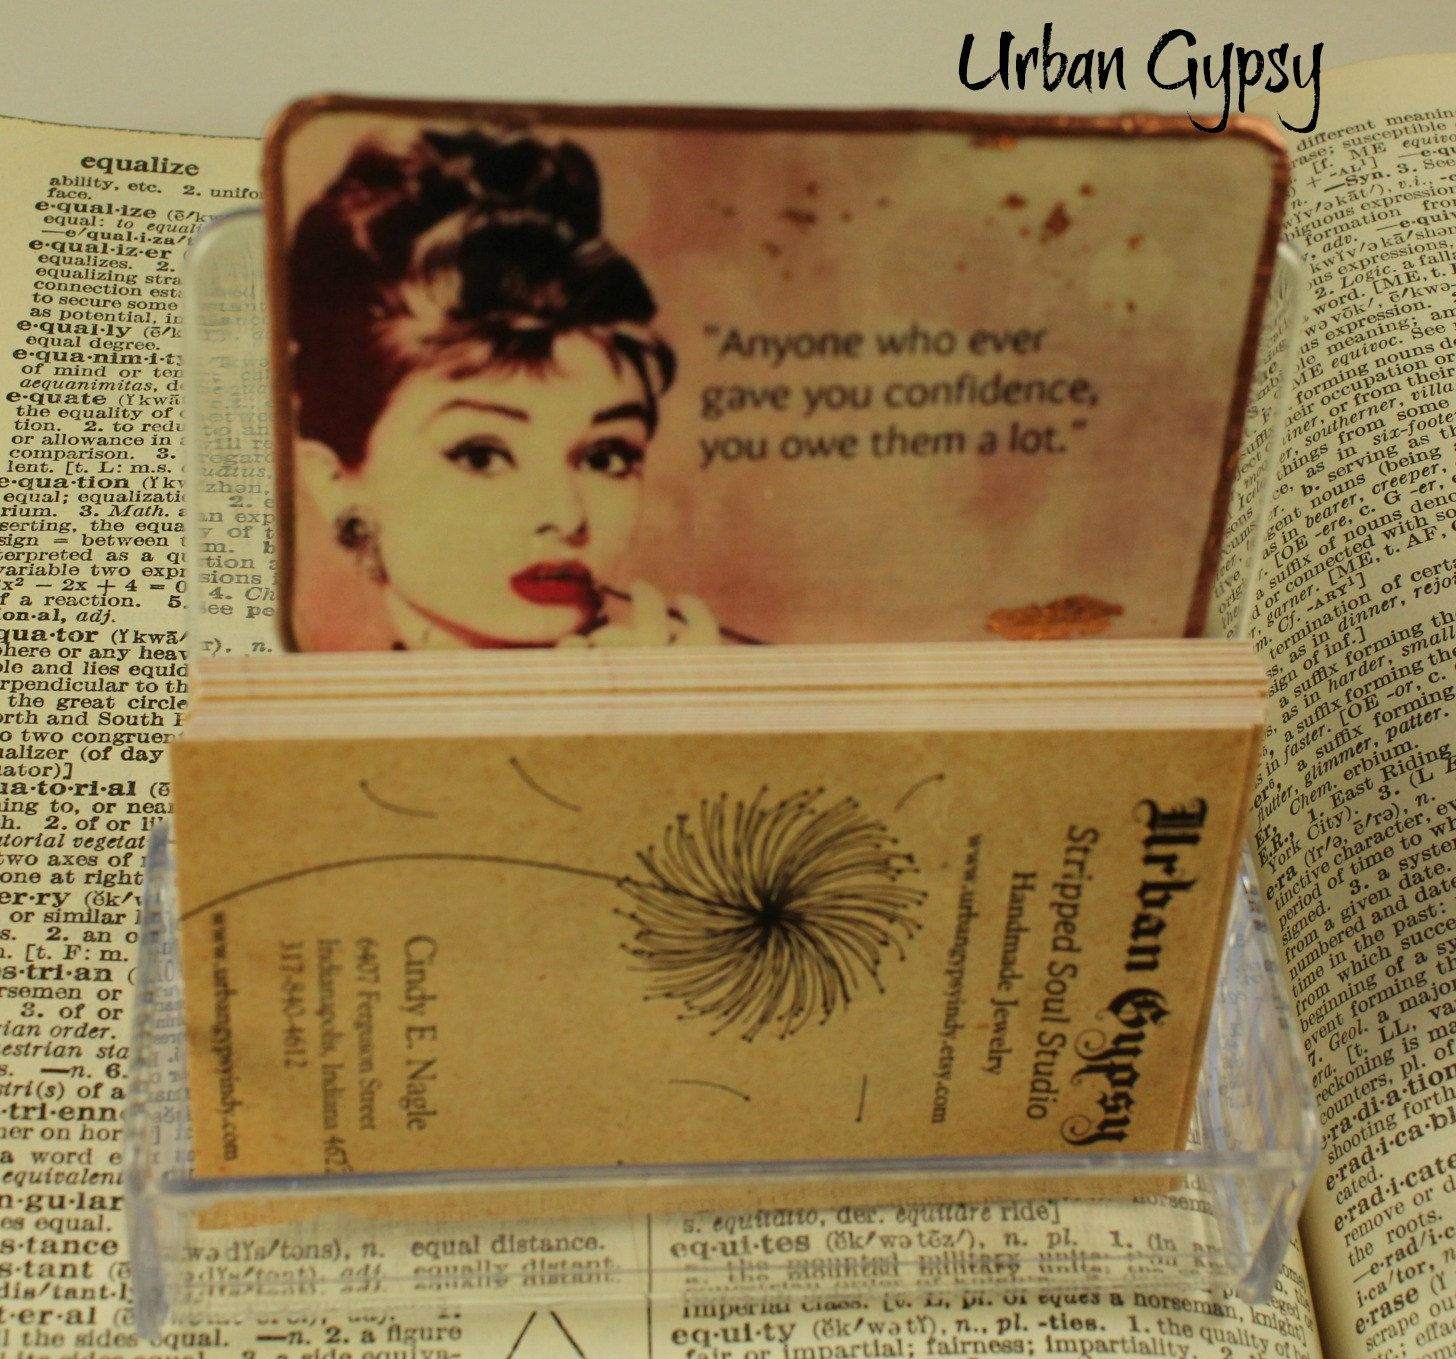 Audrey hepburn quote breakfast at tiffanys business card holder audrey hepburn quote breakfast at tiffanys business card holder desktop organizer by urbangypsyindy on etsy reheart Gallery